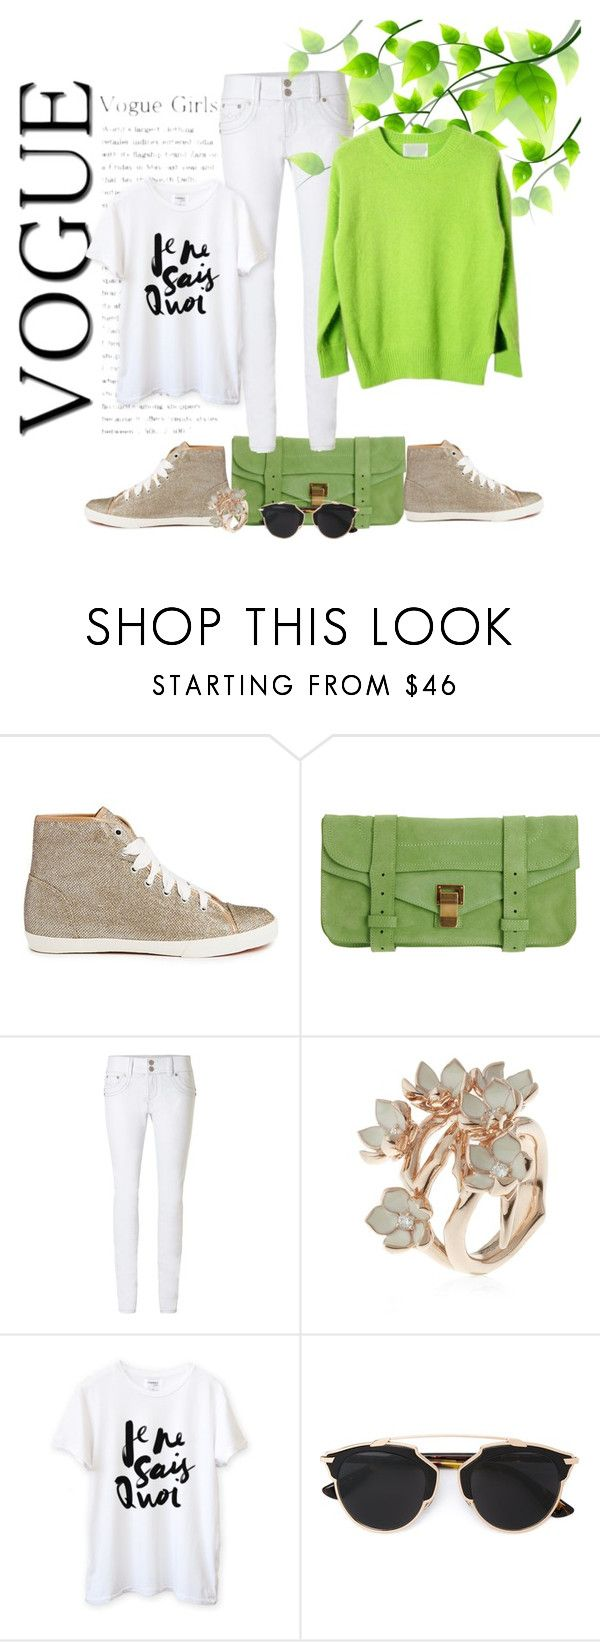 """""""Je ne sais quoi vogue"""" by black-ladybird ❤ liked on Polyvore featuring Carvela, Proenza Schouler, Jane Norman, Shaun Leane and Christian Dior"""